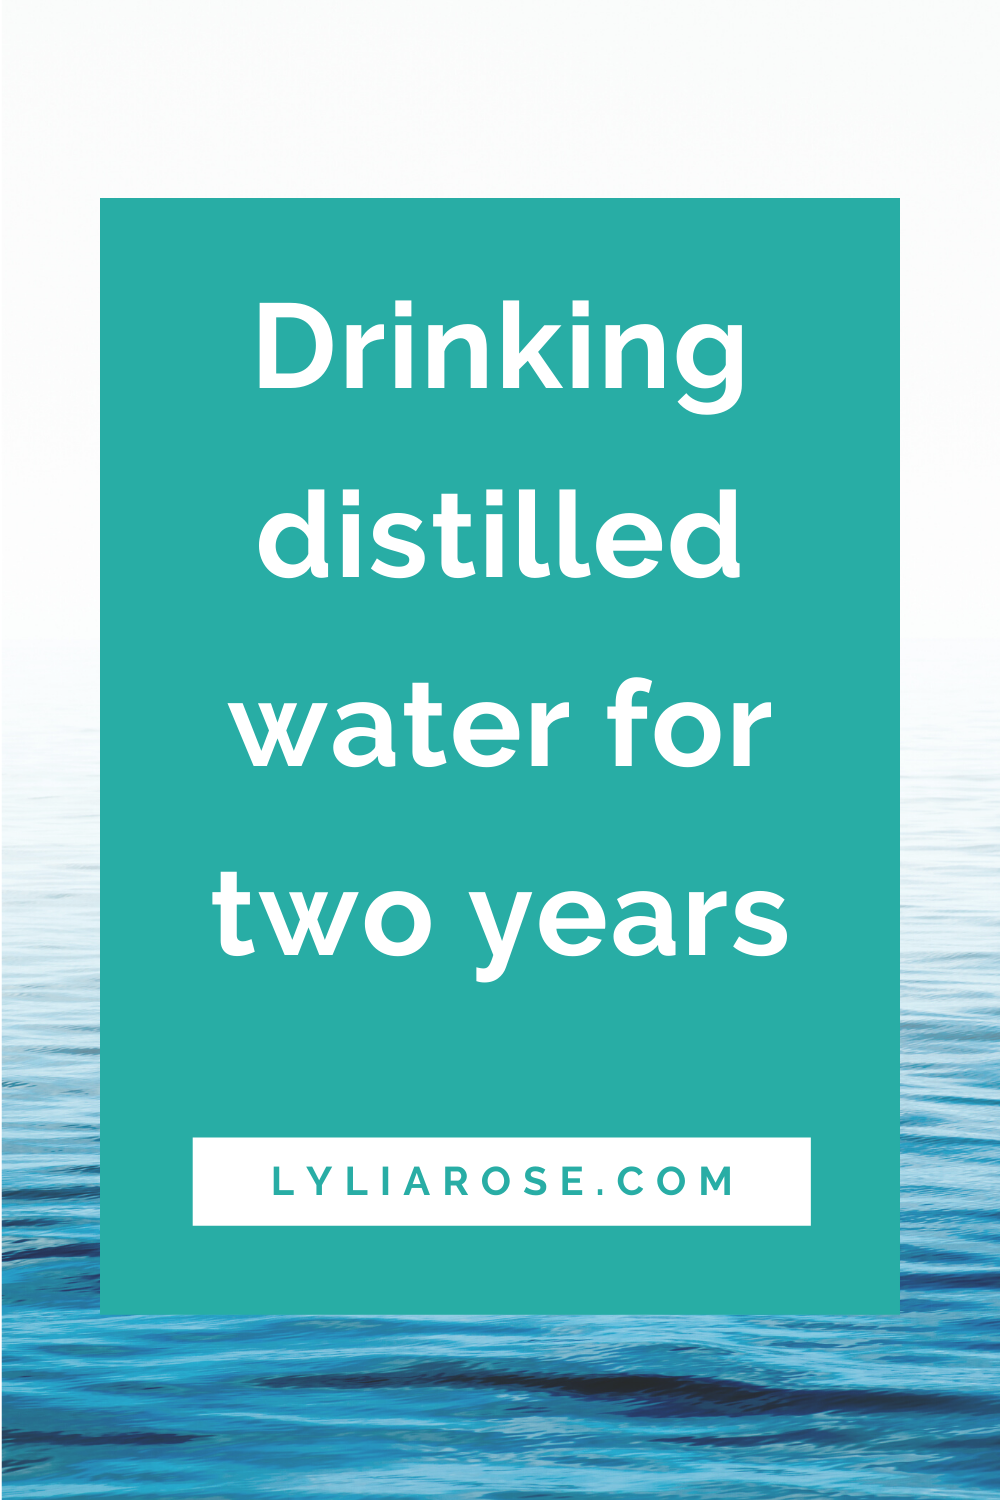 Drinking distilled water for two years